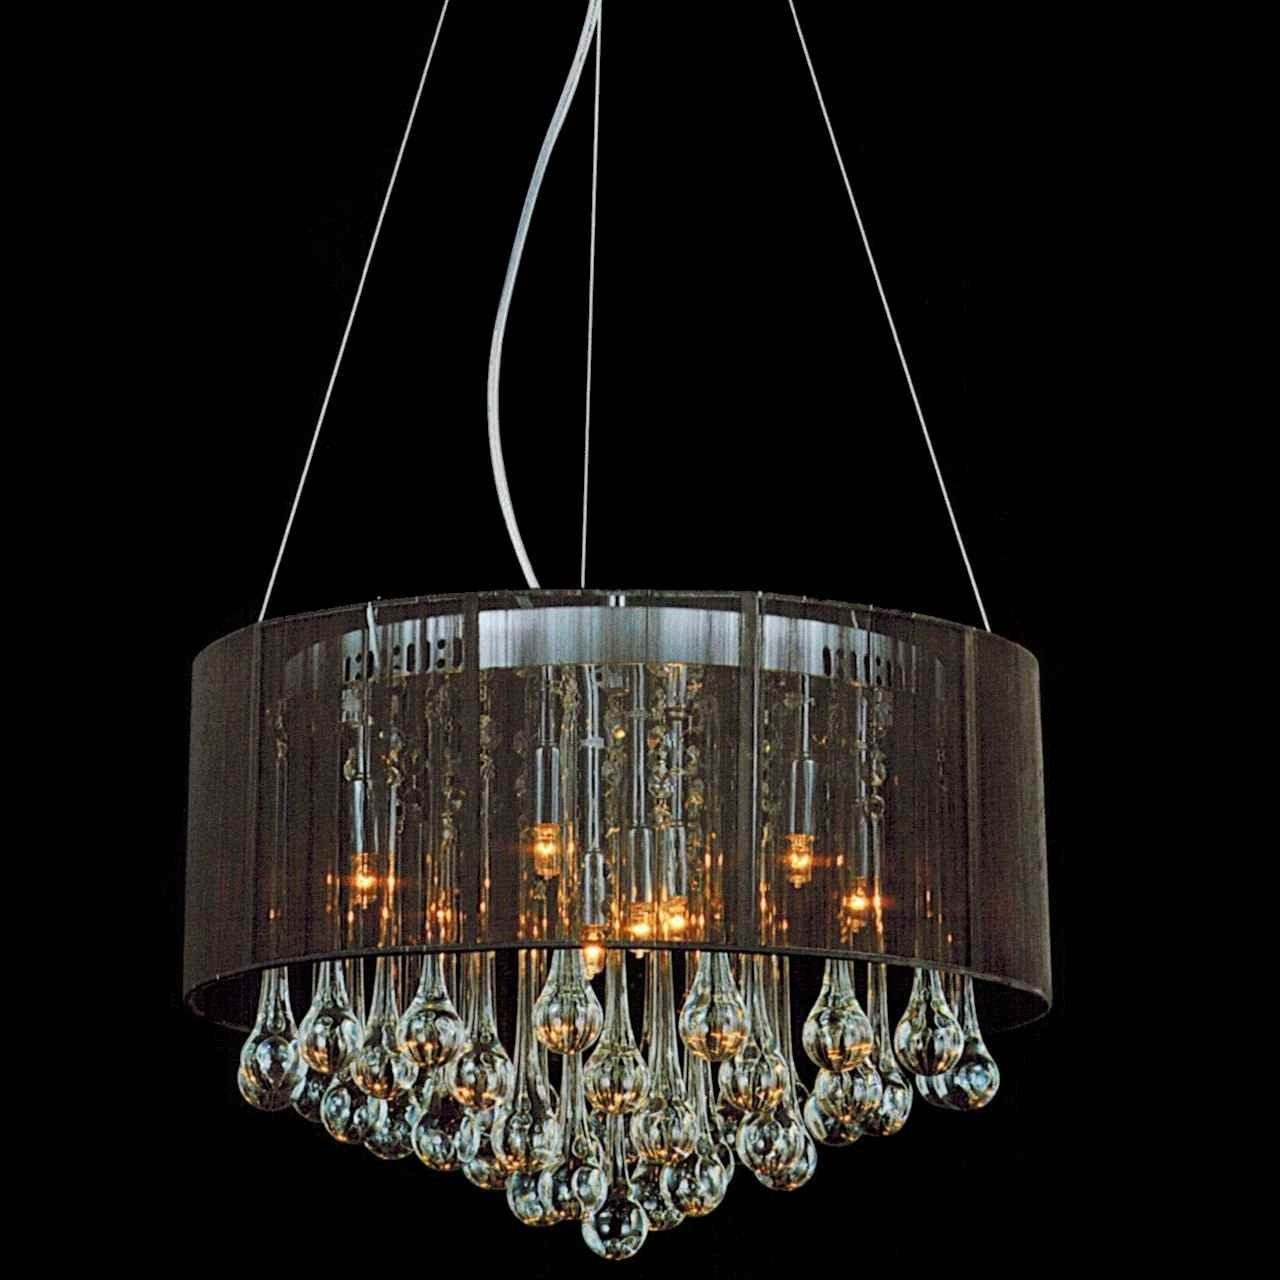 Brizzo Lighting Stores 18 Gocce Modern String Drum Shade Crystal Regarding Chandelier With Shades And Crystals (Image 10 of 25)